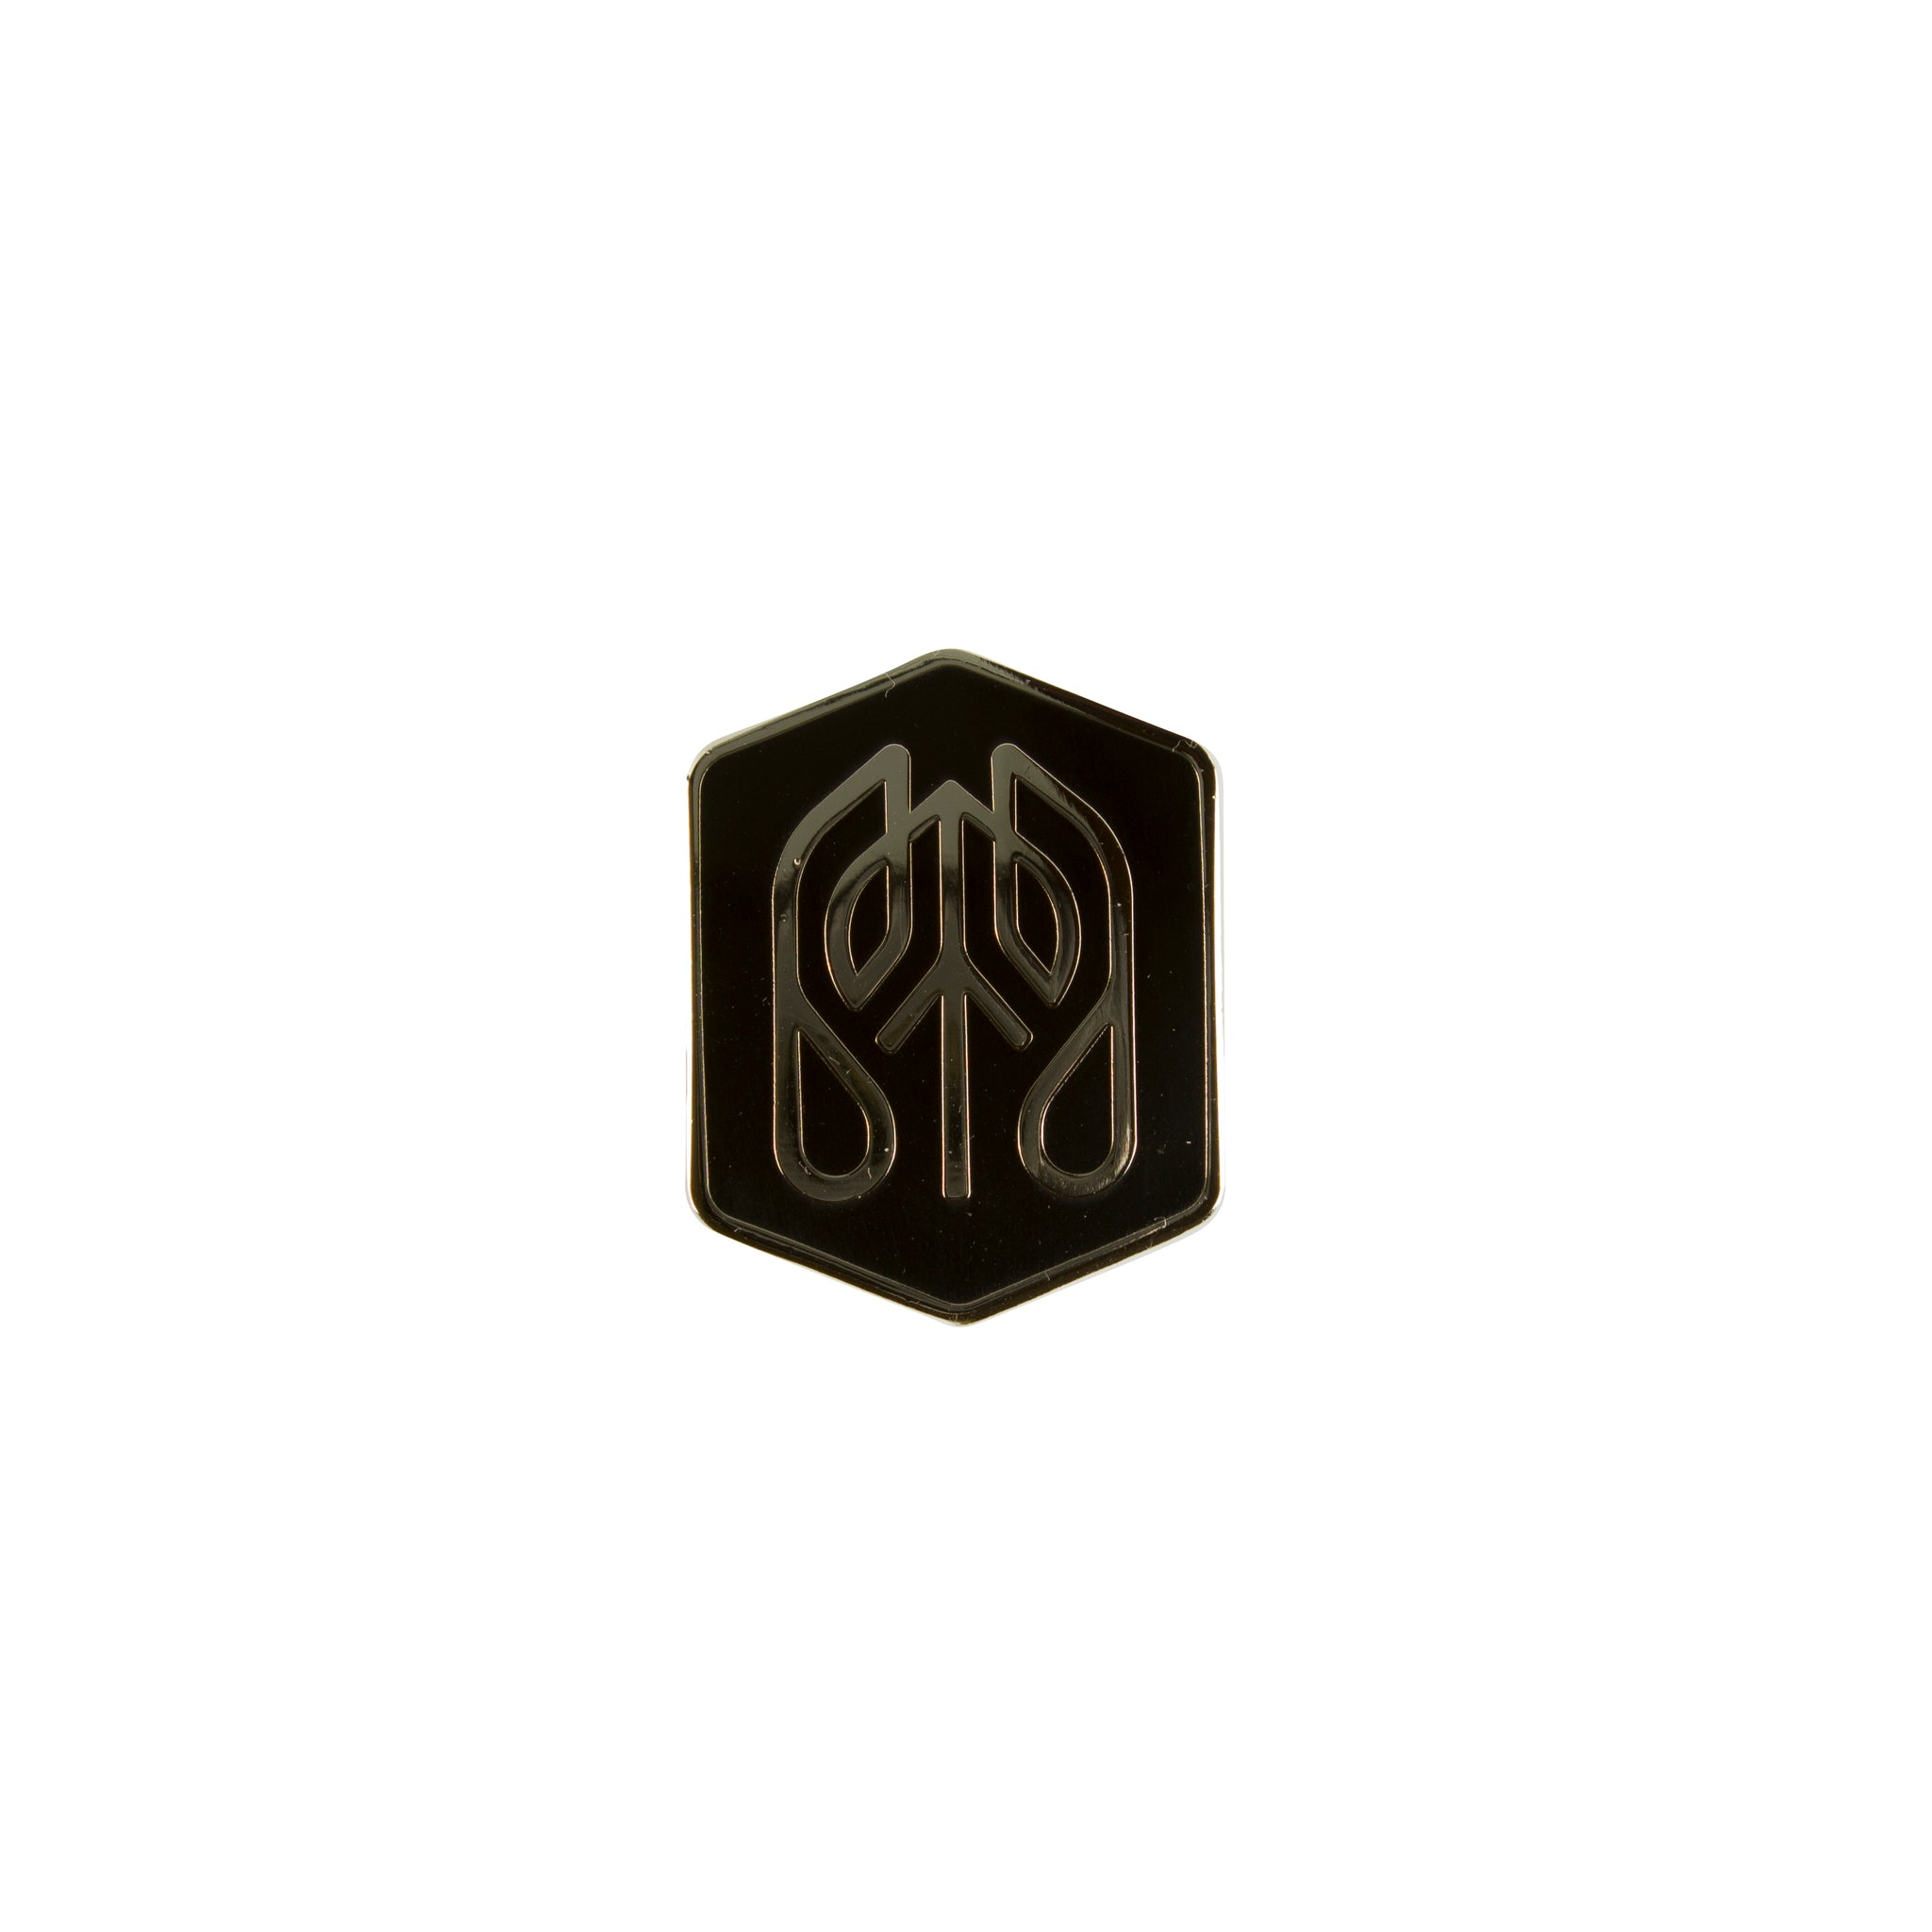 Jet_Black - Common Ground Badge Pin Front View